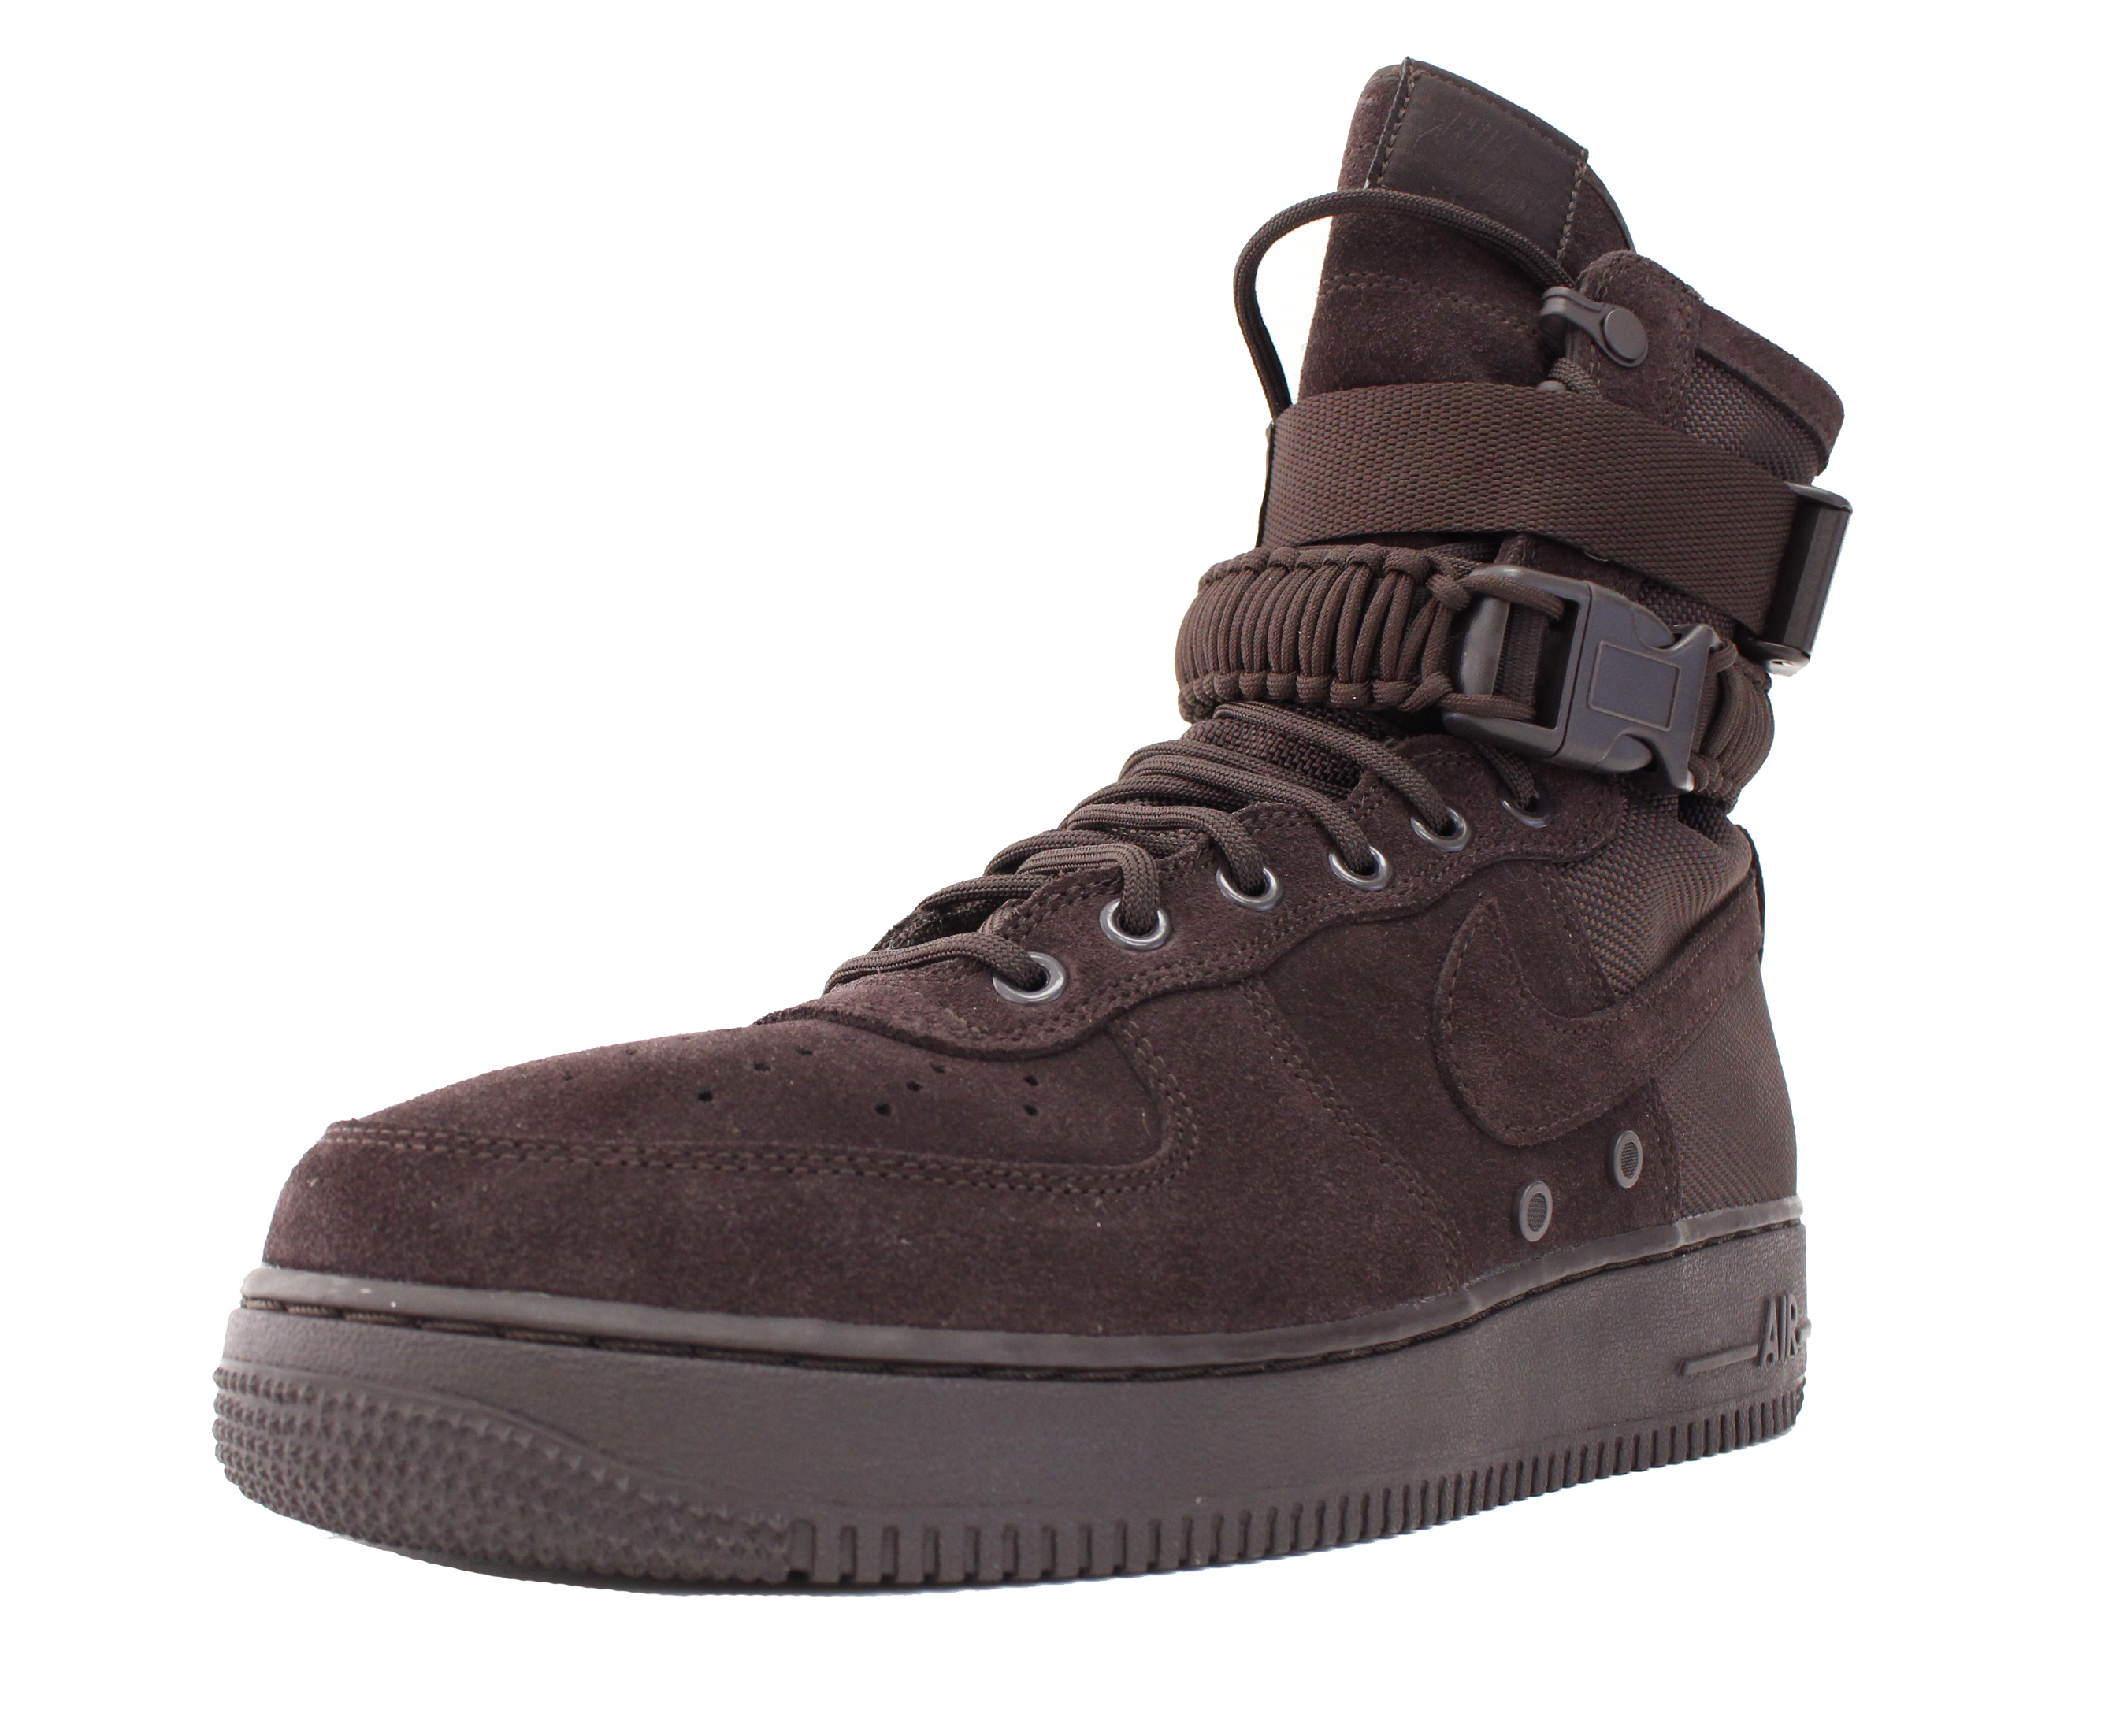 official photos bef1b 49184 ... wholesale nike sf af1 special field air force 1 high sz 10.5 velvet  brown boot 864024